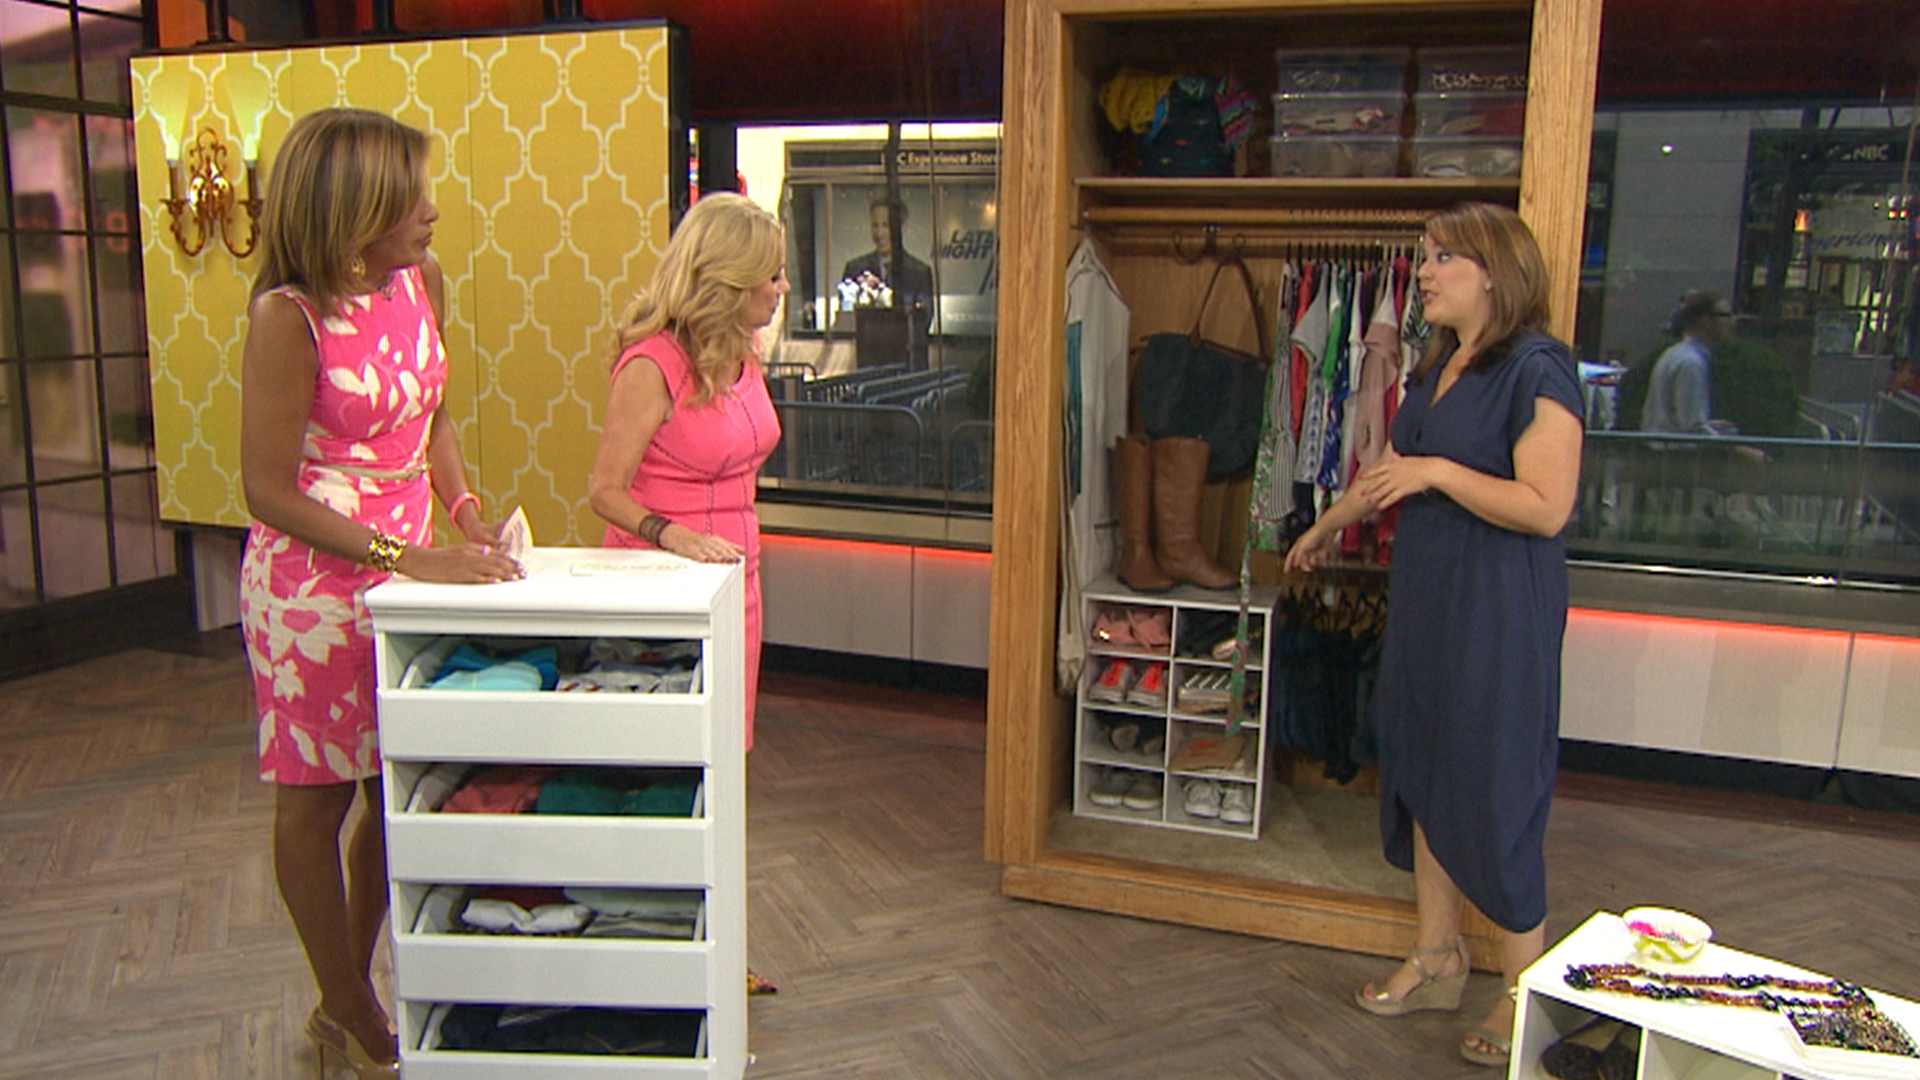 Clear The Clutter In Your Closet, And Find Your New Wardrobe Inside